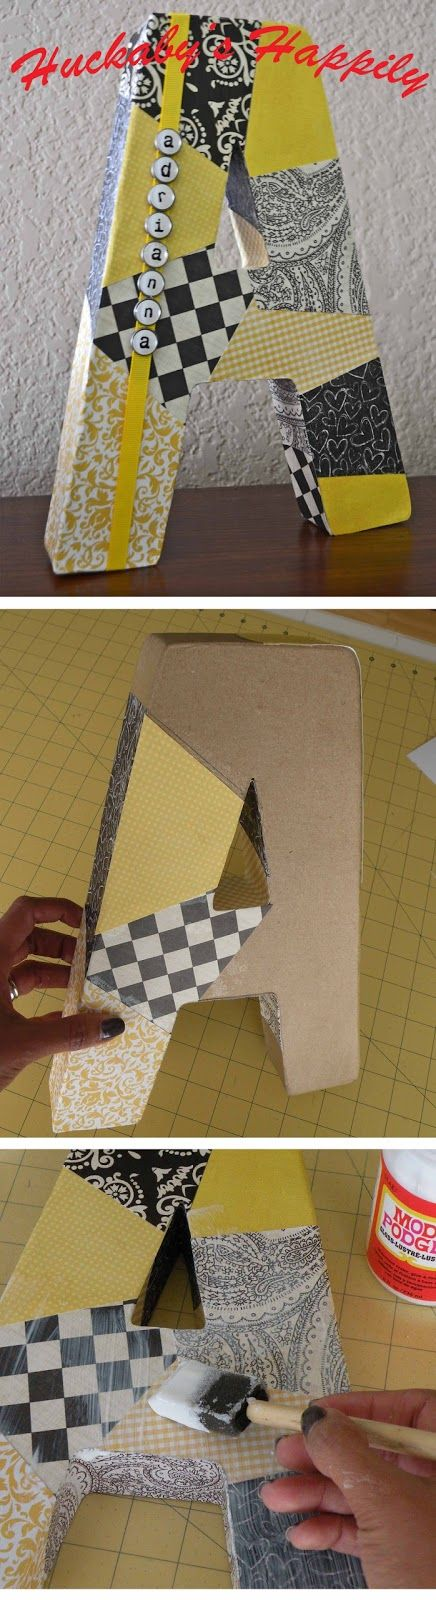 covering chipboard letters with scrapbook paper